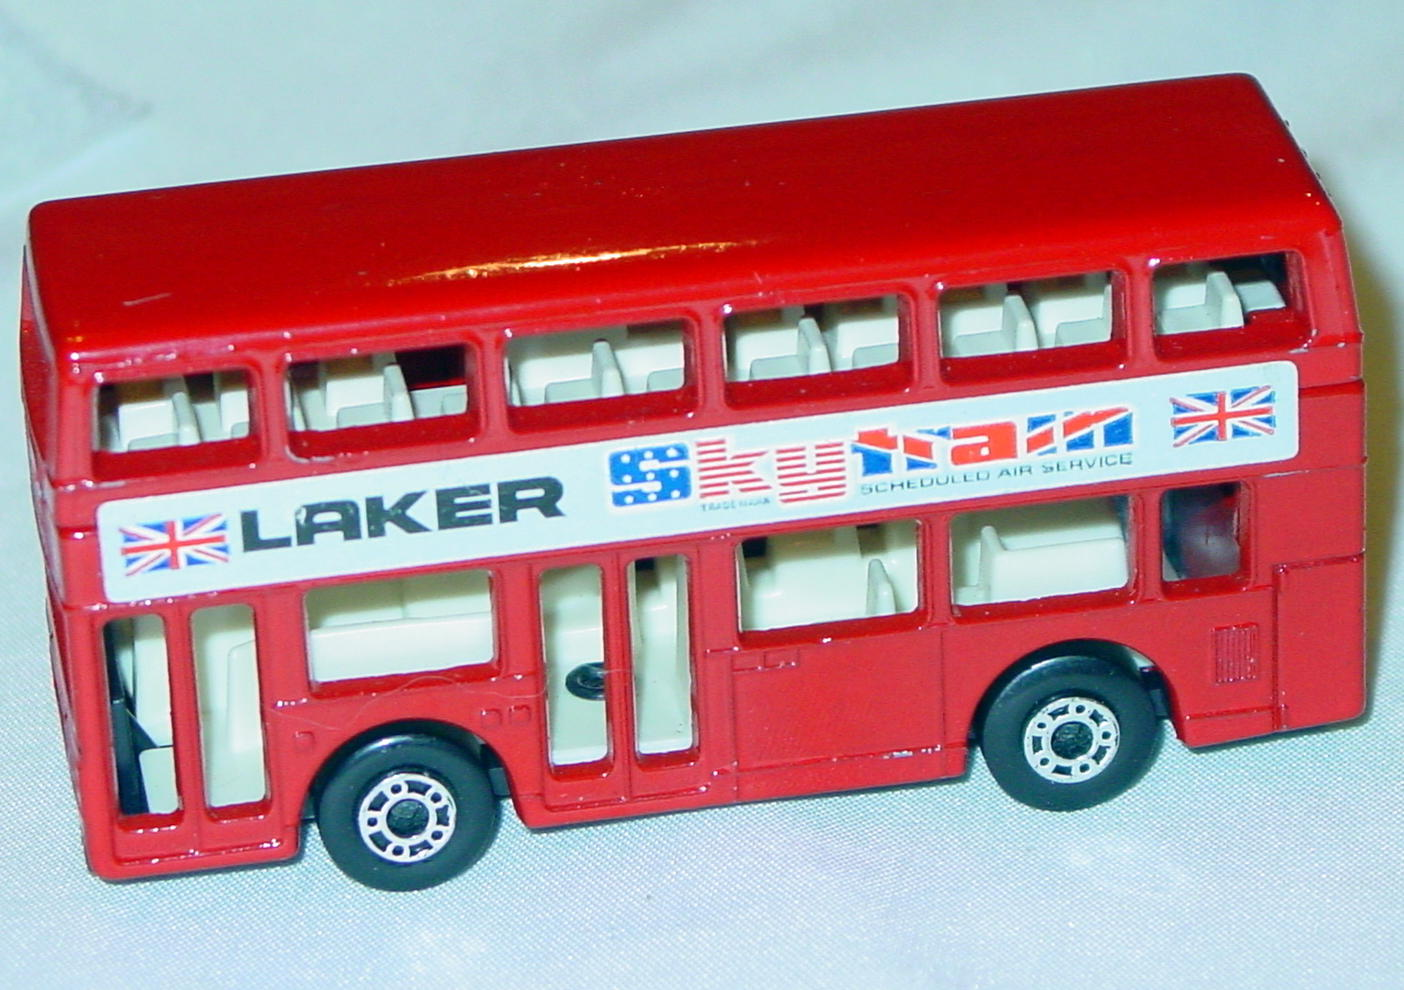 Lesney SuperFast 17 C 2 - Titan Bus Red Laker